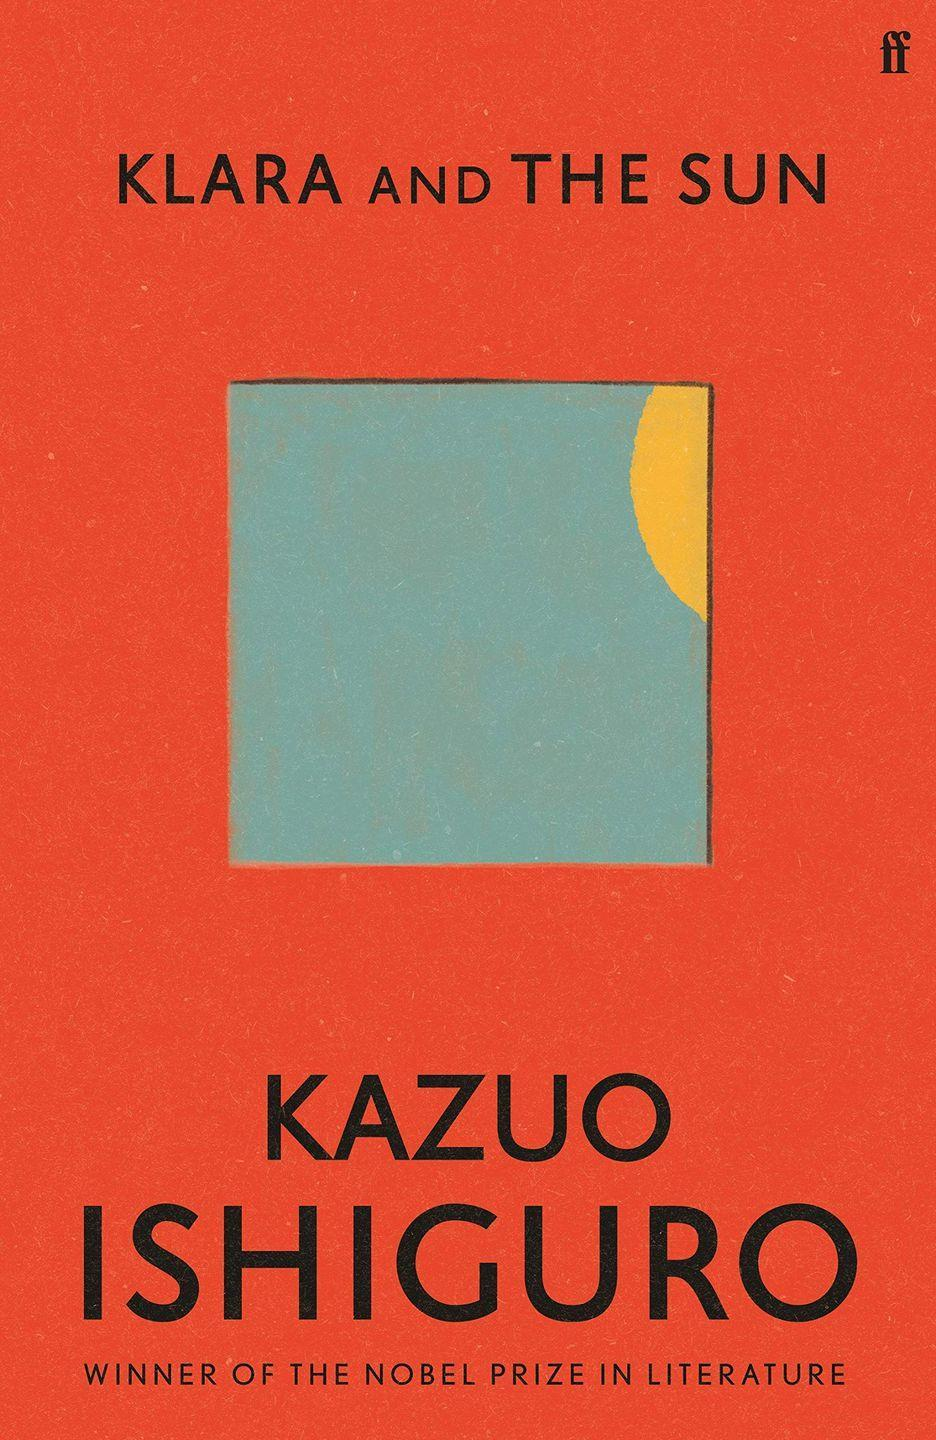 """<p><a class=""""link rapid-noclick-resp"""" href=""""https://www.amazon.co.uk/Klara-Sun-hardback-Kazuo-Ishiguro/dp/057136487X?tag=hearstuk-yahoo-21&ascsubtag=%5Bartid%7C1923.g.35138437%5Bsrc%7Cyahoo-uk"""" rel=""""nofollow noopener"""" target=""""_blank"""" data-ylk=""""slk:SHOP"""">SHOP</a></p><p>In his first novel since he was awarded the Nobel Prize in Literature, masterful storyteller Kazuo Ishiguro tells the story of Klara, an Artificial Friend who keenly observes the shop she is in. Given the praise which met his 2005 novel Never Let Me Go, Ishiguro returning to science fiction is an exciting prospect considering how well he imbues it with deeply human sentiments. </p><p>OO</p>"""